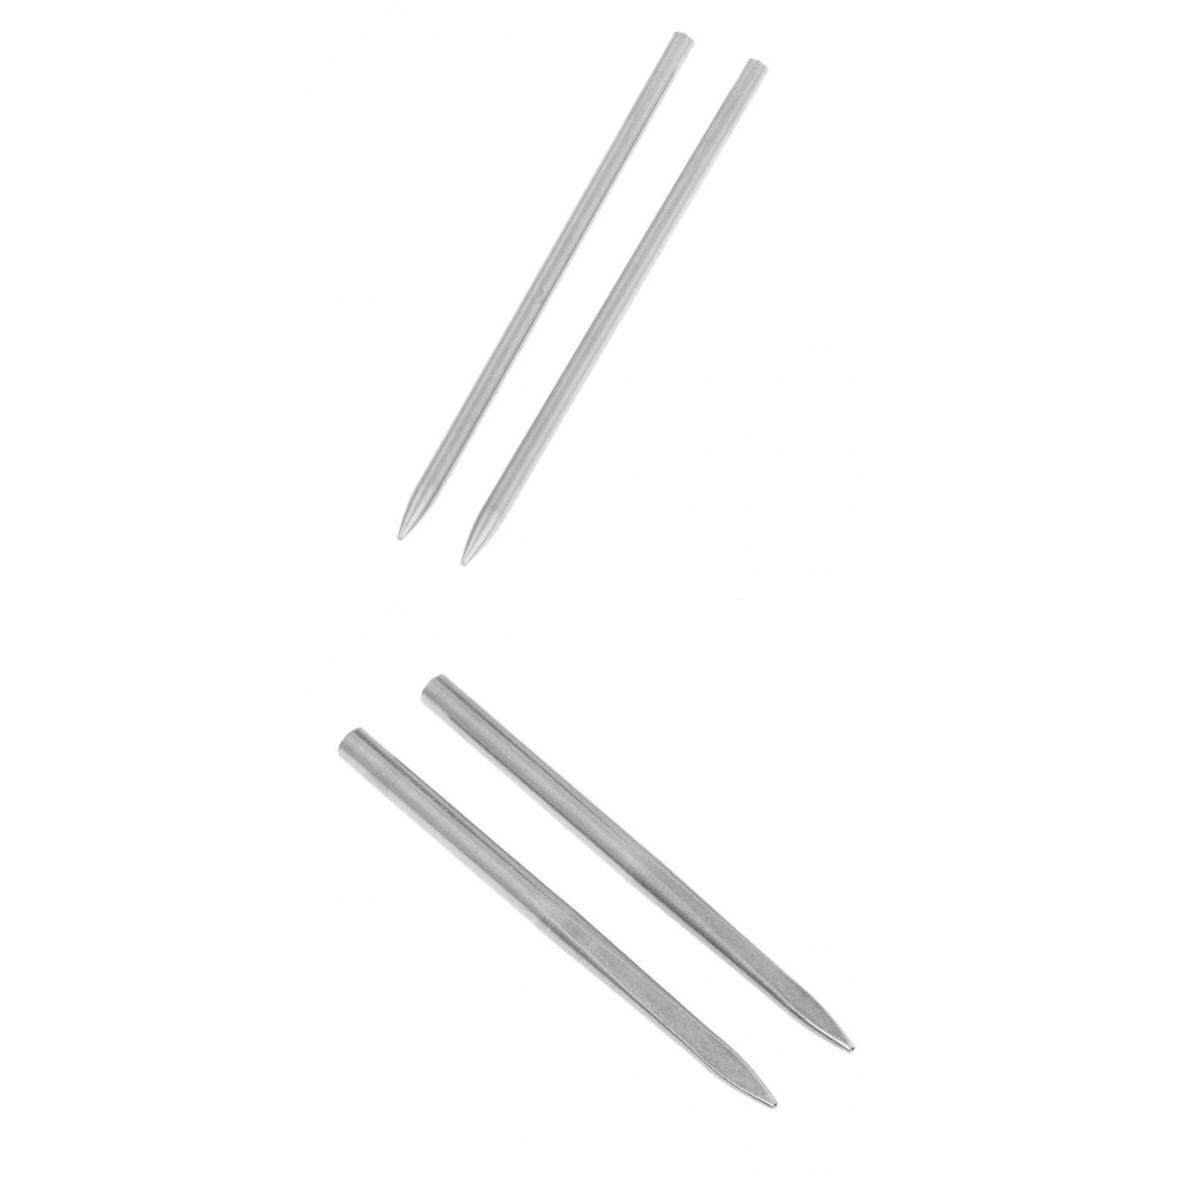 Magideal 4pcs Stainless Steel Paracord Fid Lacing Stitching Needles 2mm 3mm Outdoors By Magideal.